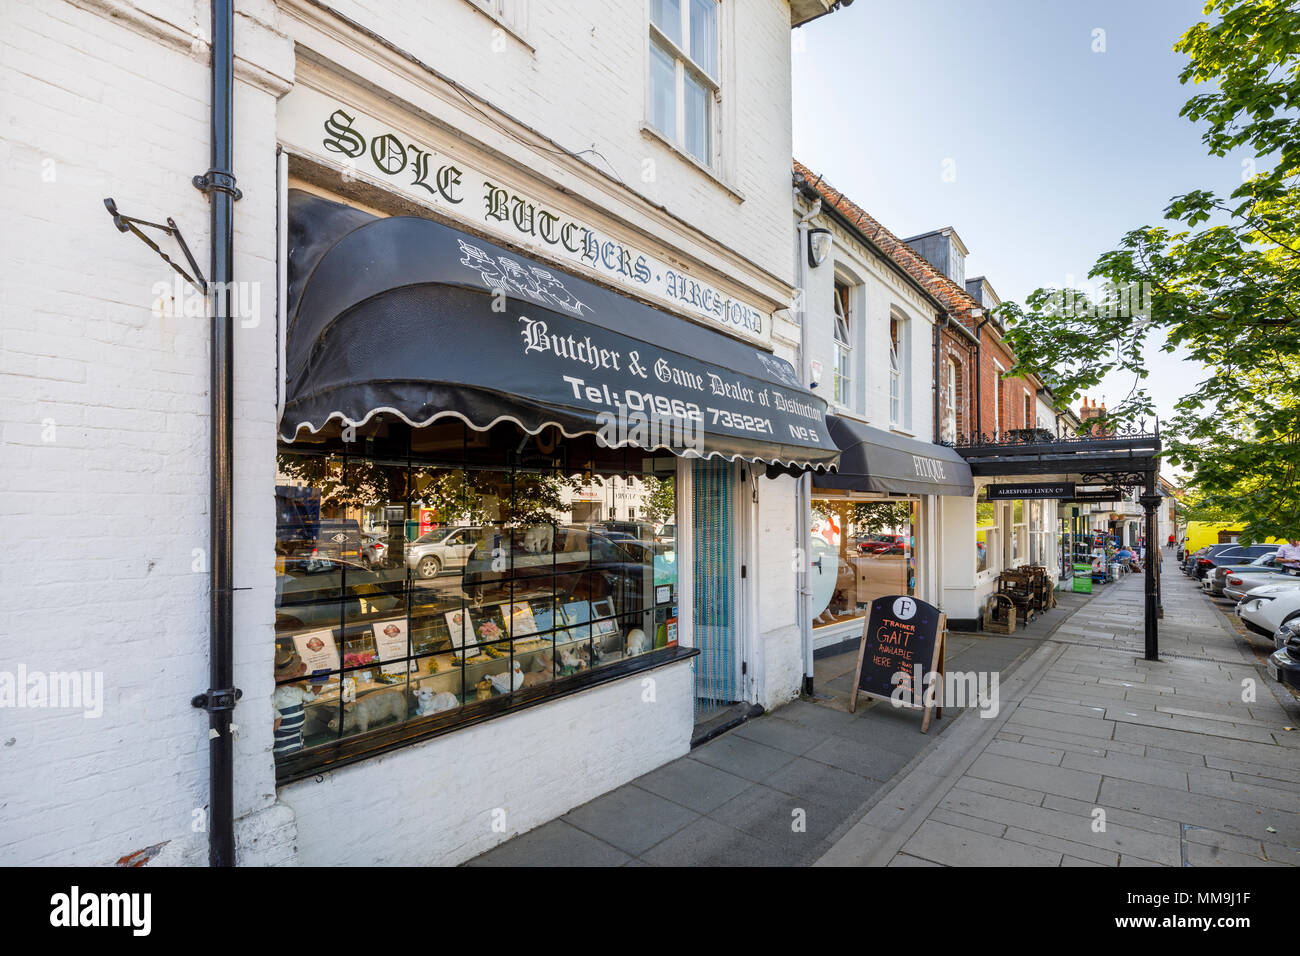 Sole Butchers, a traditional butcher and game shop in Broad Street, New Alresford, a small town or village in Hampshire, southern England, UK - Stock Image